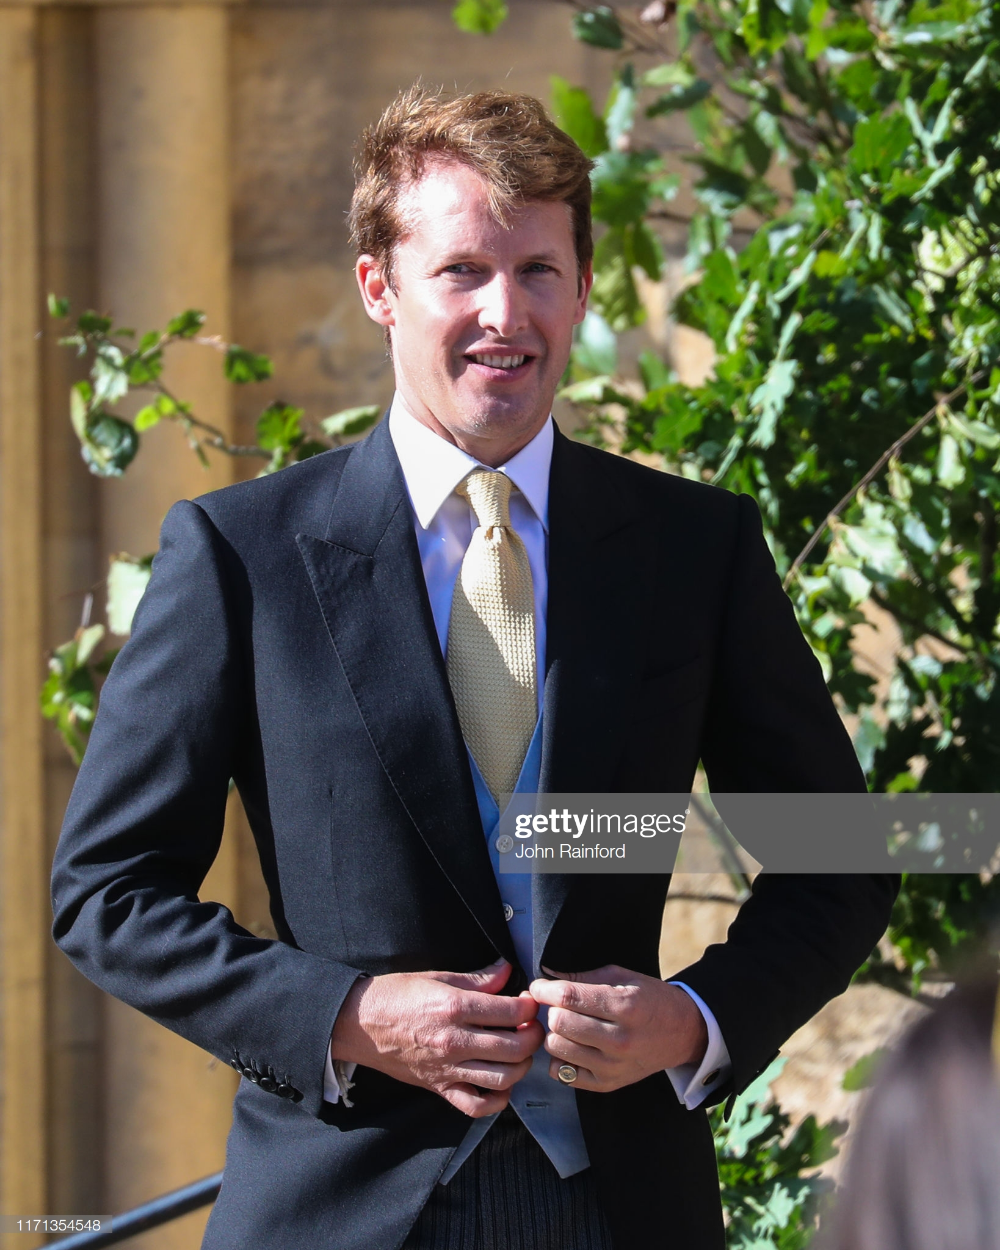 James Blunt Seen At The Wedding Of Ellie Goulding And